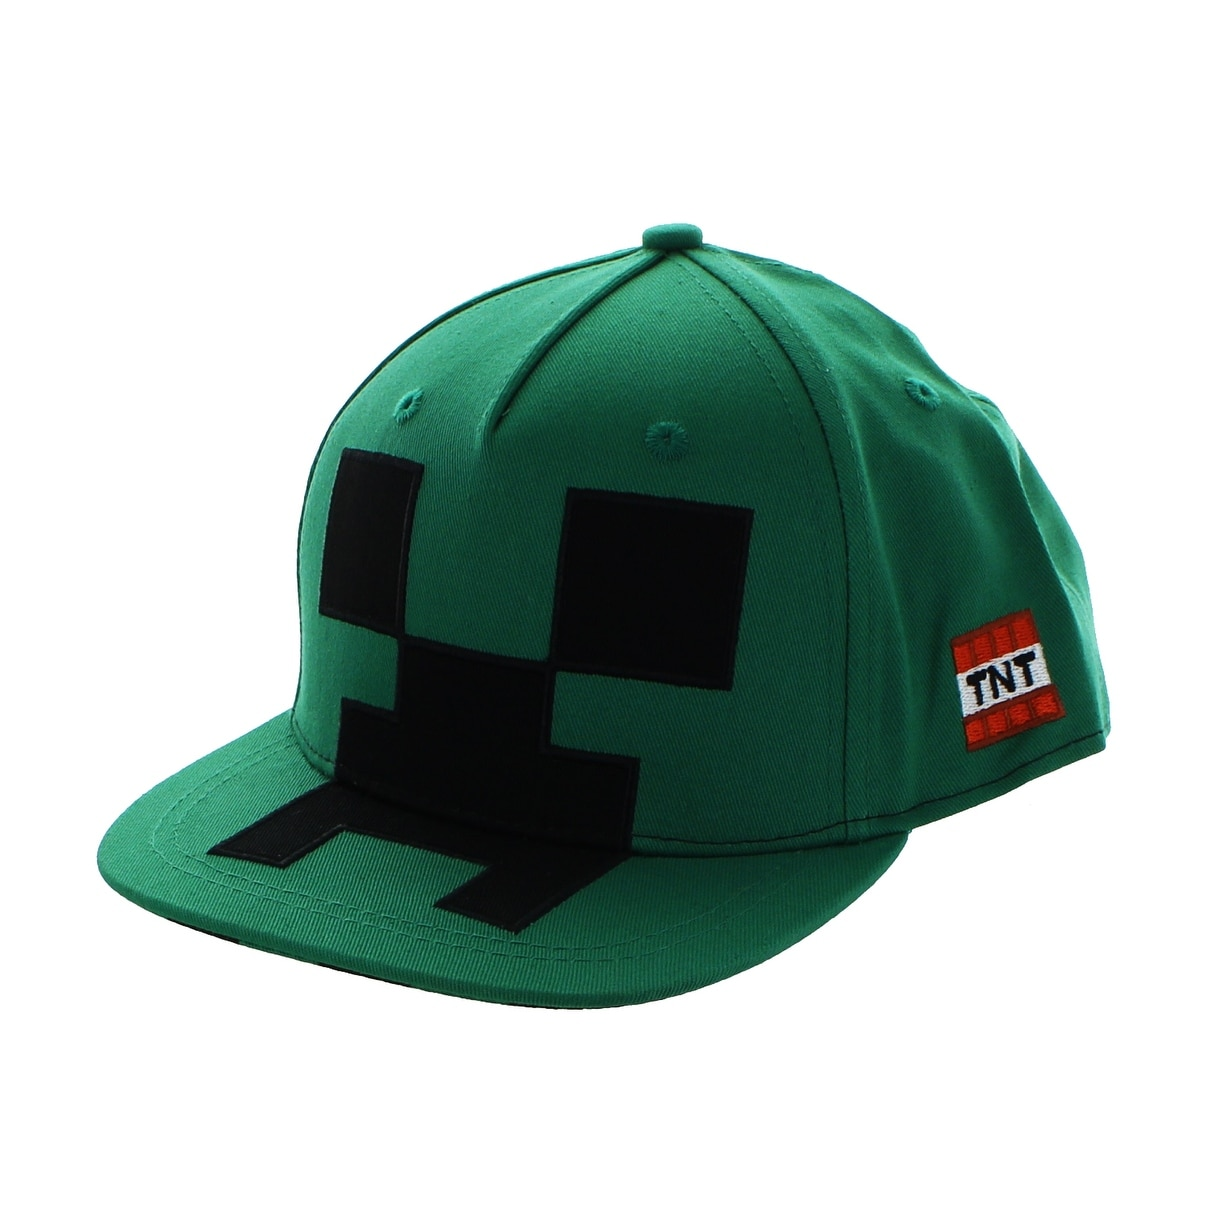 45296dbb3e2 Shop Minecraft Creeper Mob Snapback Hat - Green - Free Shipping On Orders  Over  45 - Overstock.com - 18422113